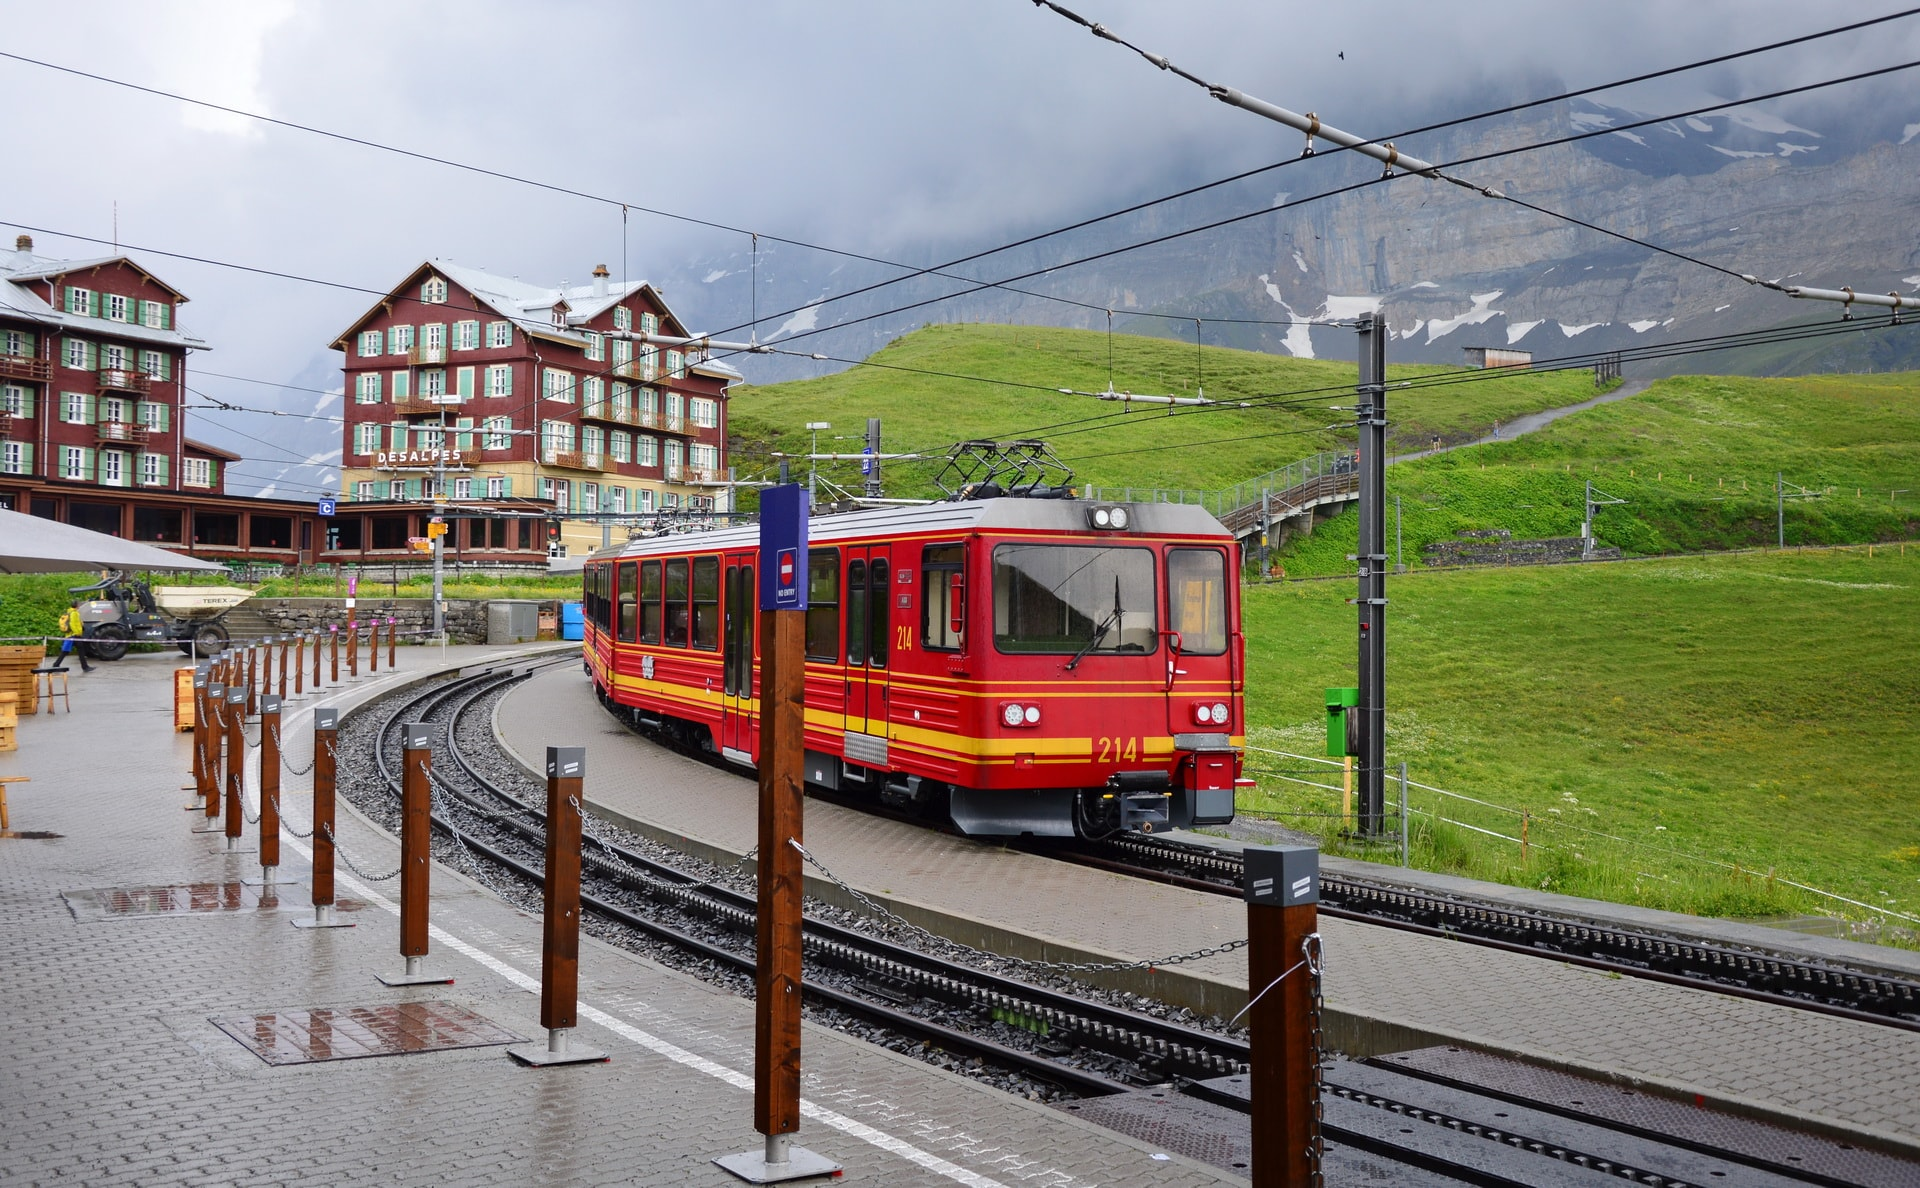 Kleine Scheidegg train station, Bernese Oberland, Switzerland